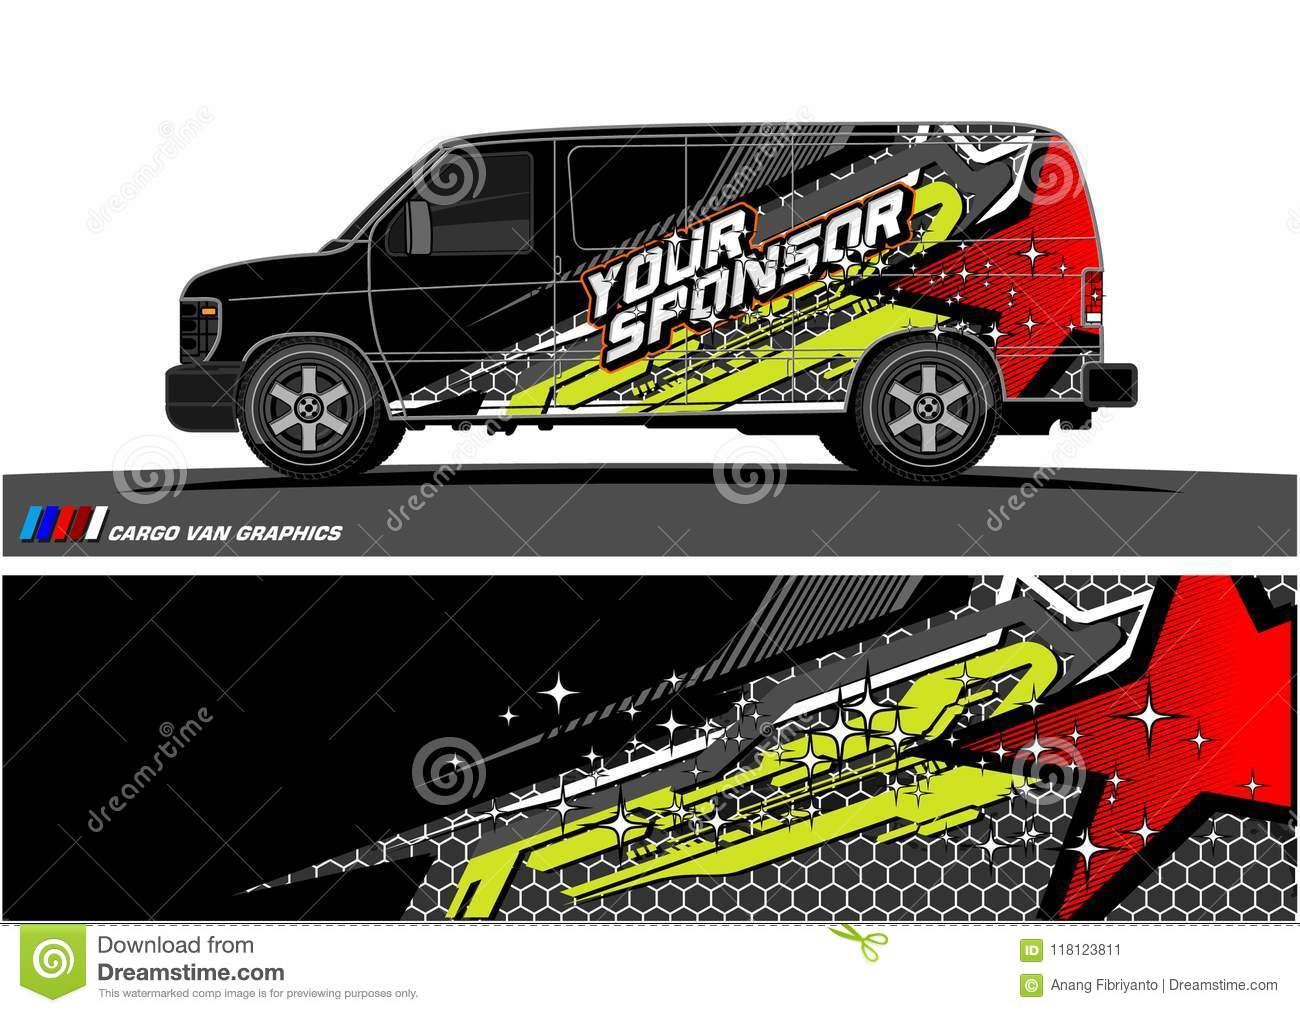 Car livery graphic vector abstract racing shape design for vehicle vinyl wrap background